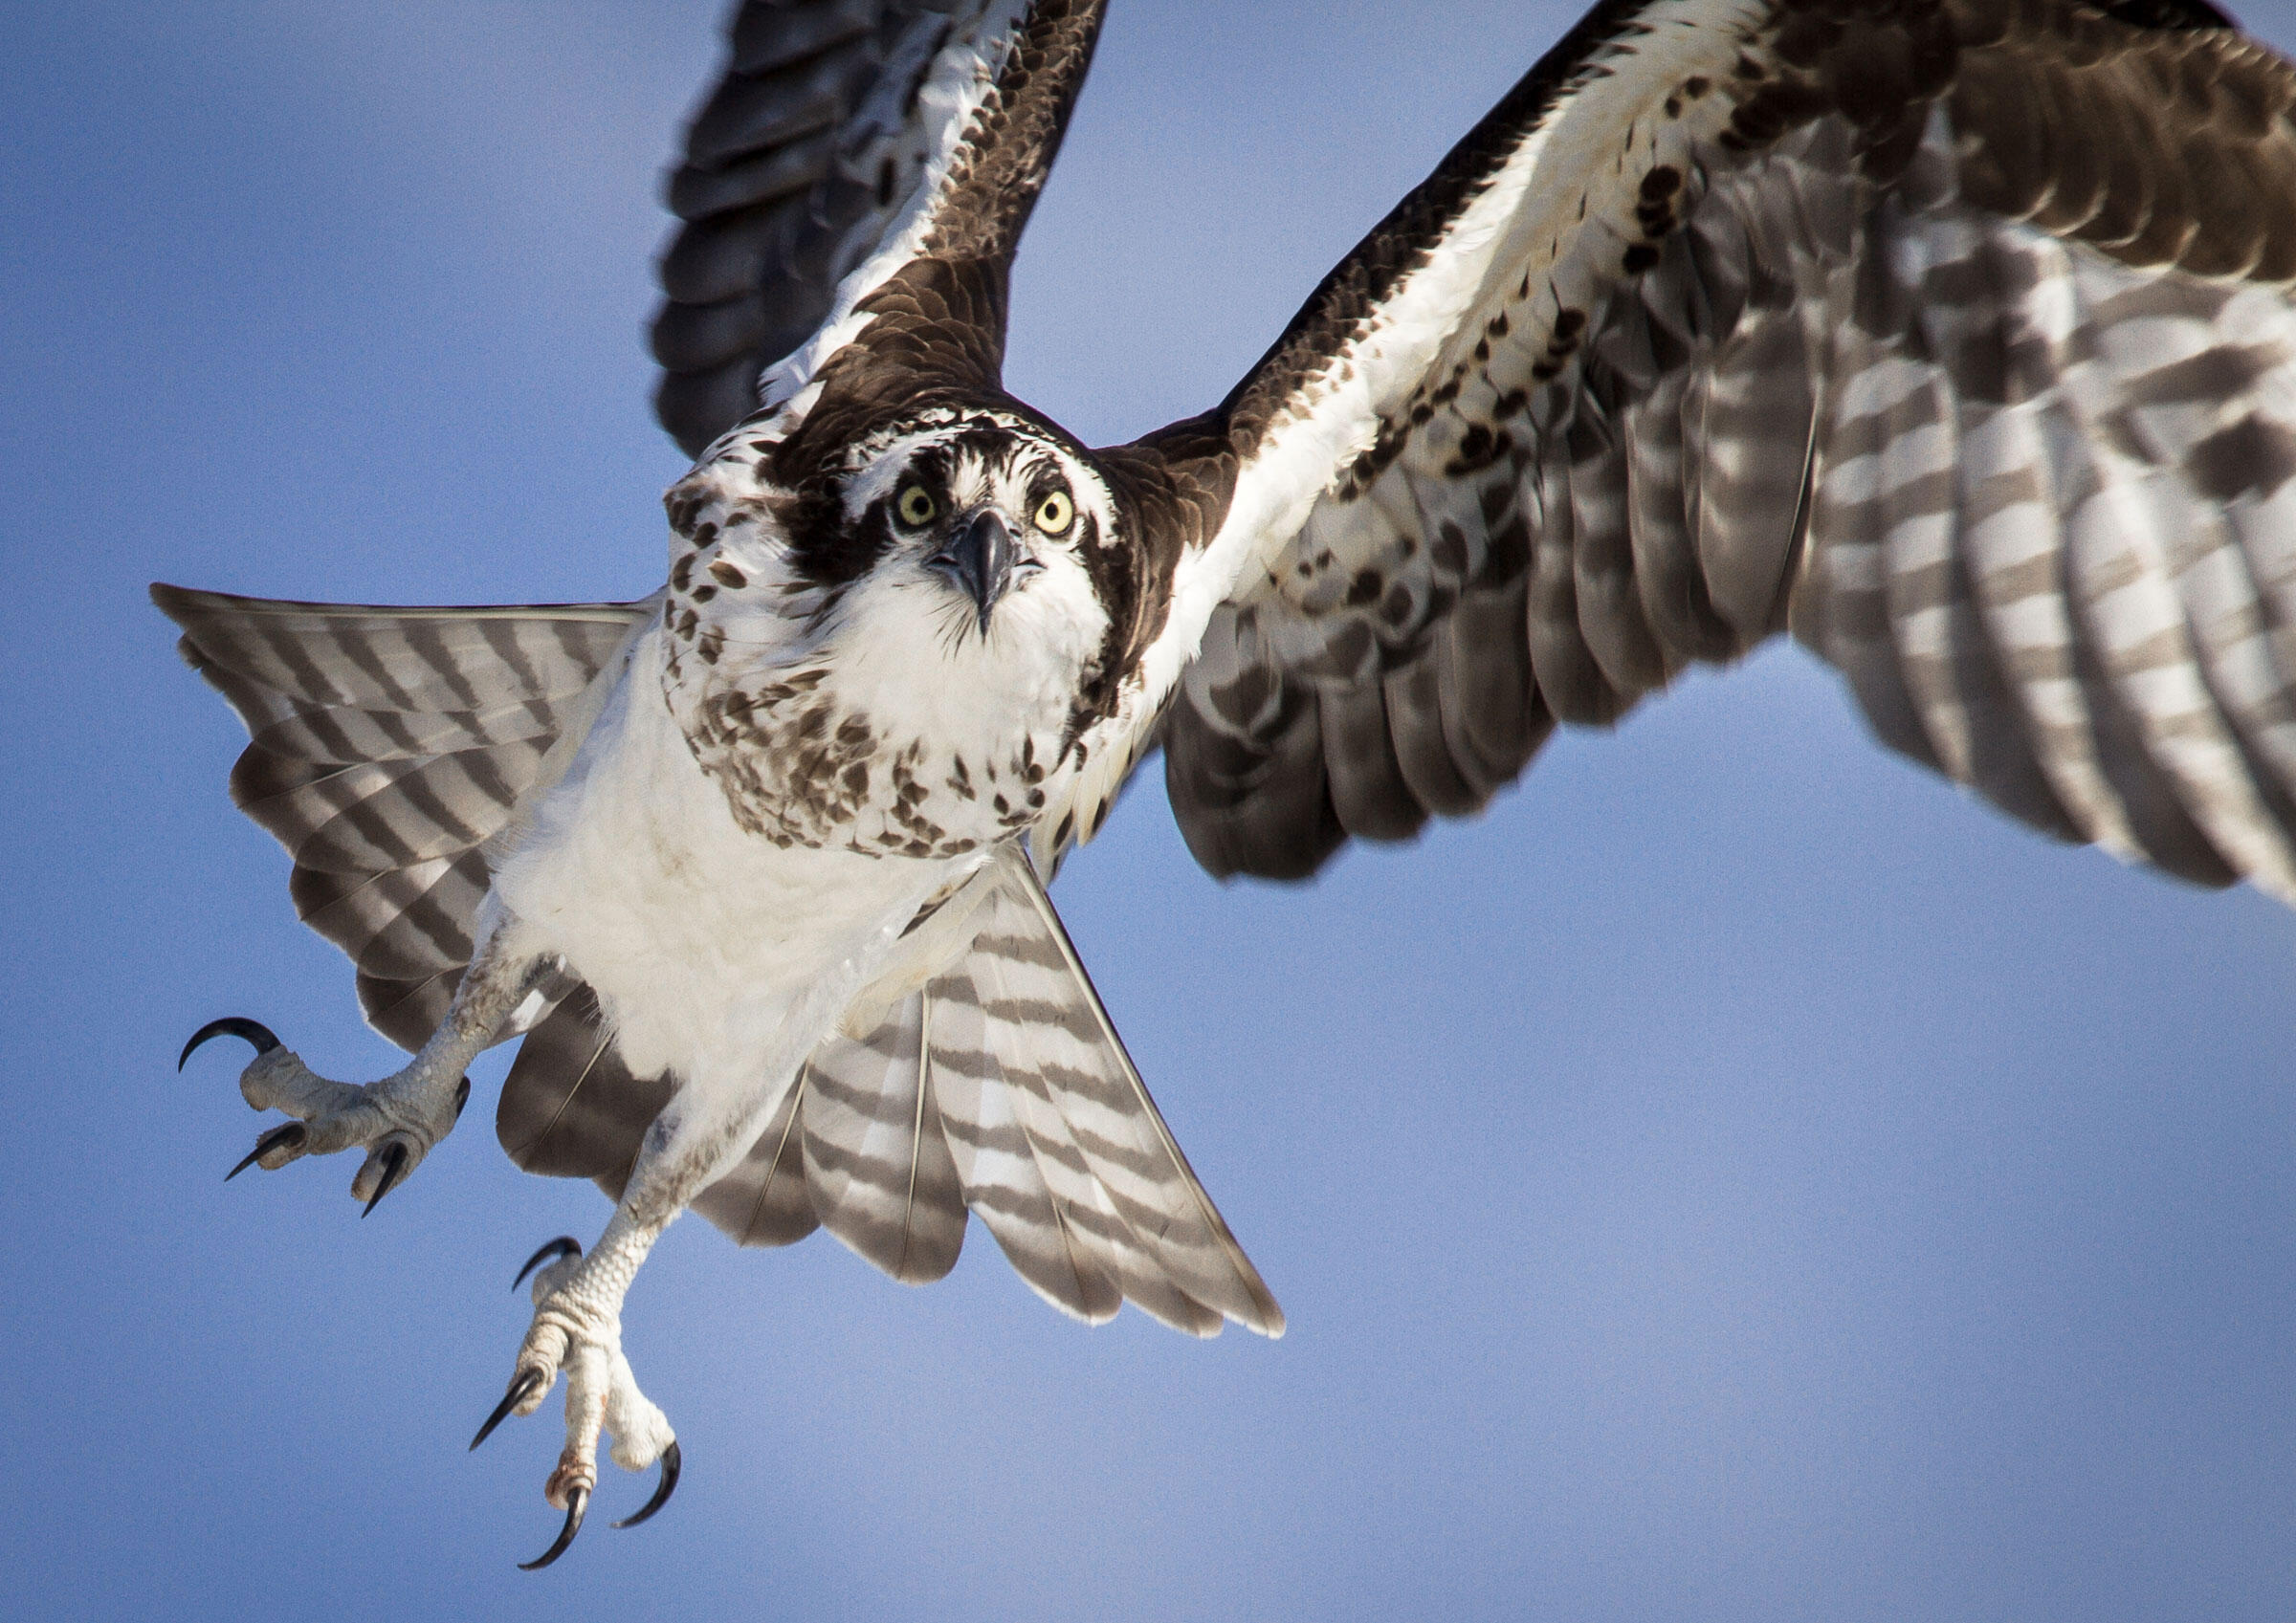 An Osprey's raw power and massive talons are qualities perfectly adapted to pluck a live fish from water and lift off again. C. Goshert/Great Backyard Bird Count